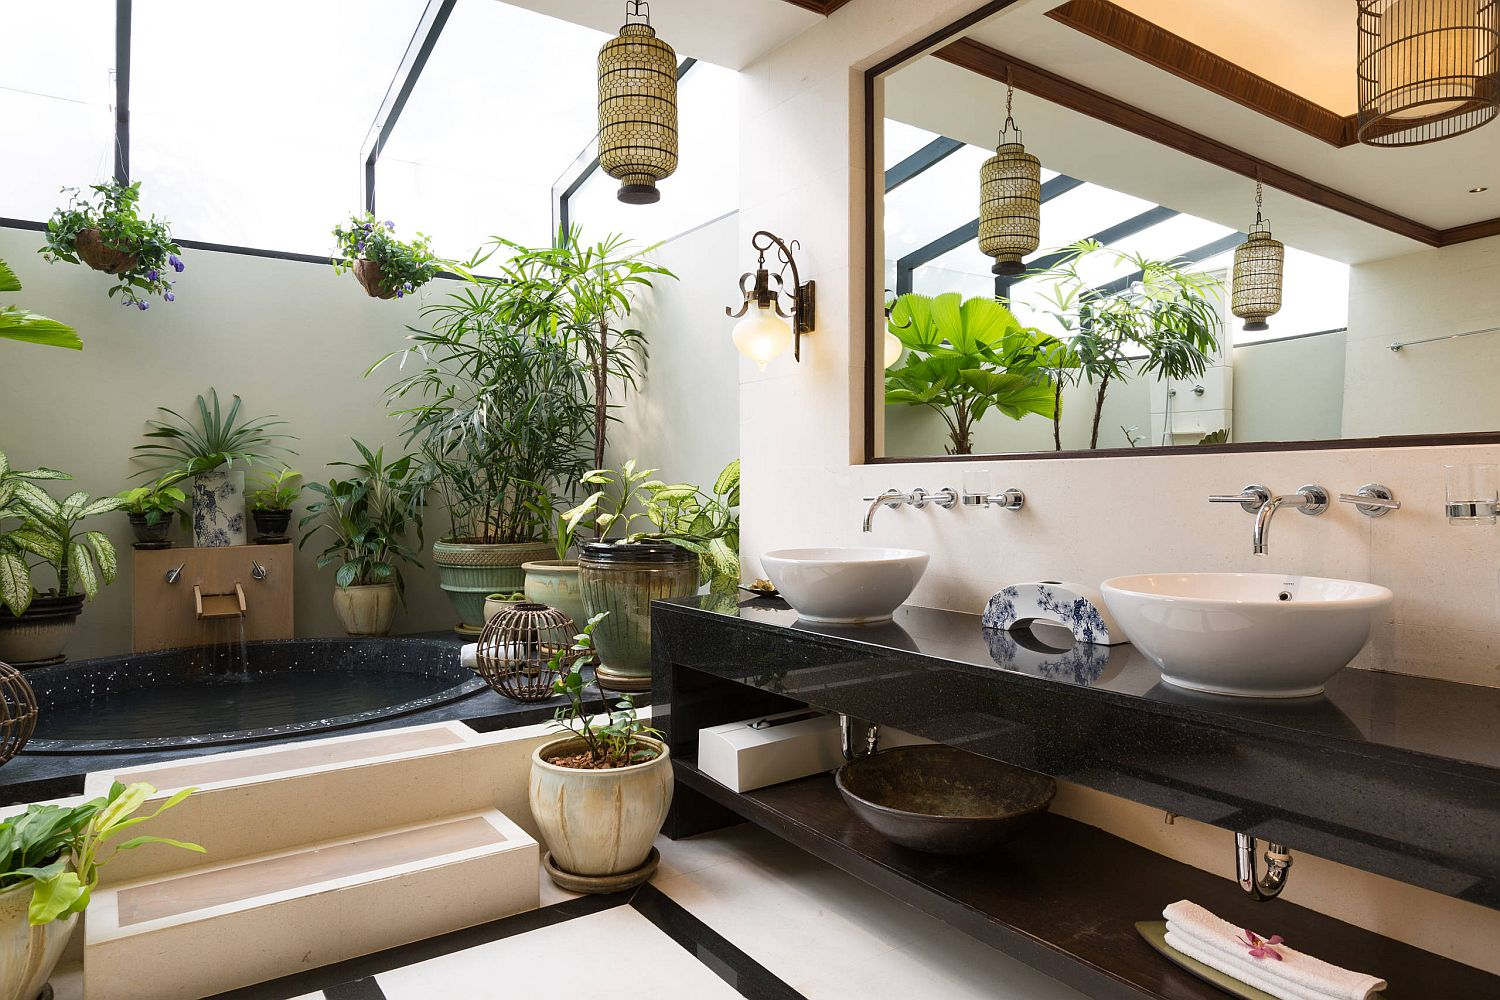 Greenery-skylights-and-wood-give-the-bathroom-a-stunning-and-relaxing-vibe